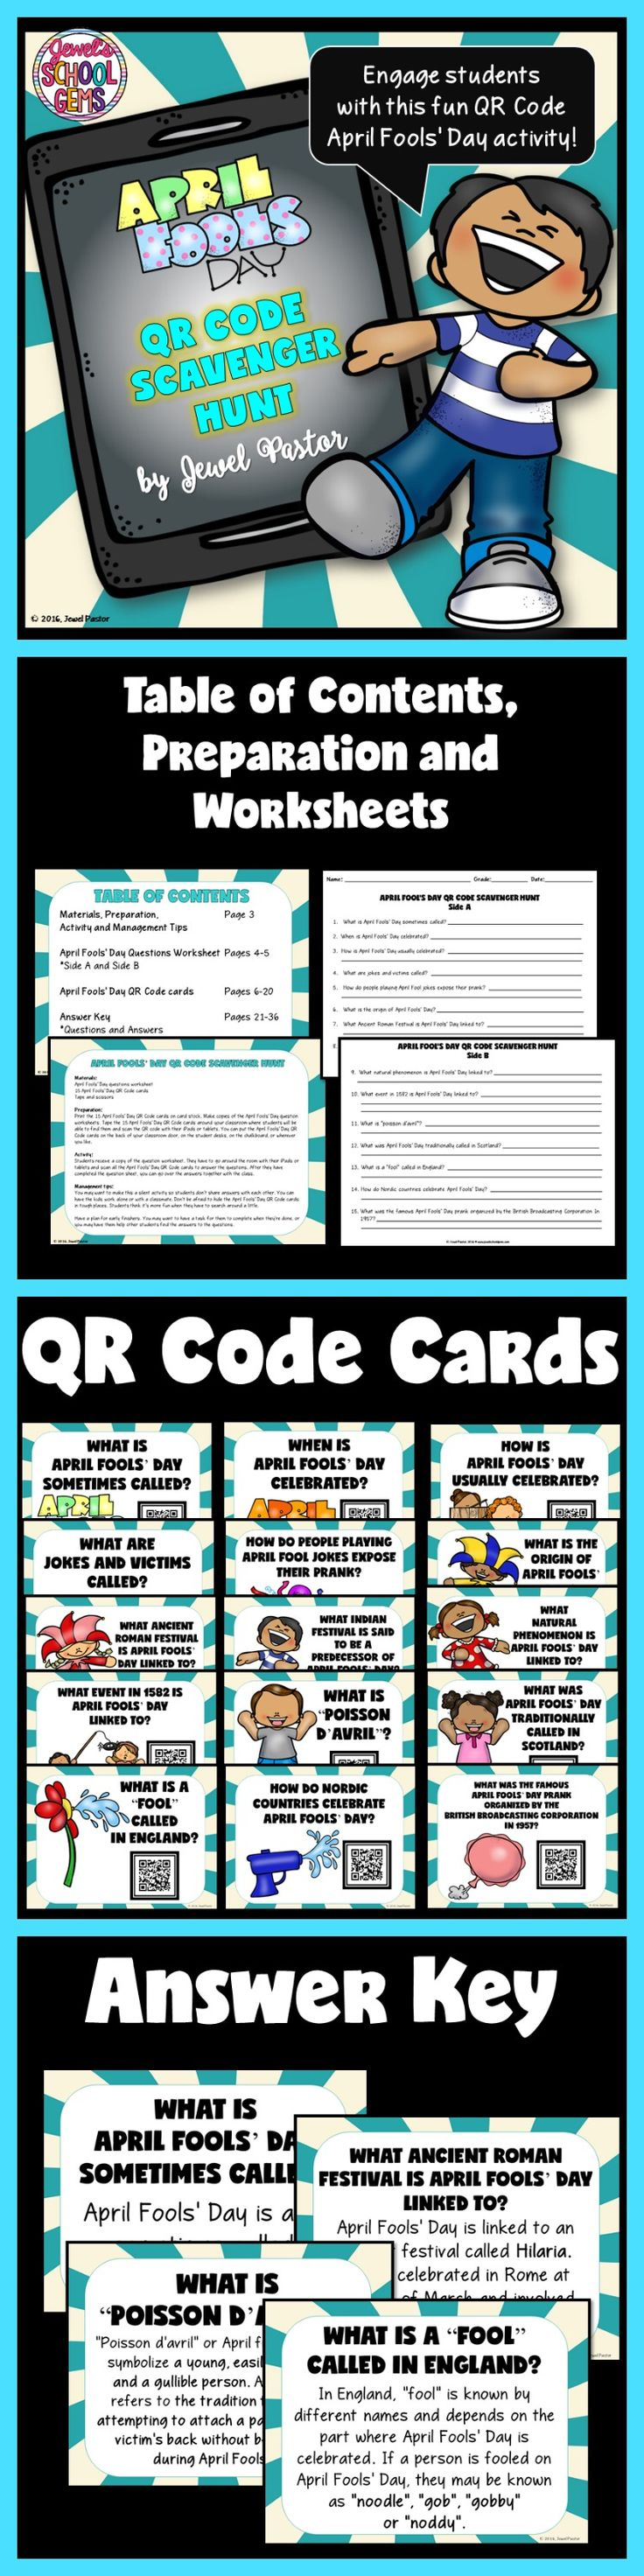 April Fools Day  APRIL FOOLS DAY QR CODE SCAVENGER HUNT   In search of fun April Fools Day activities? Engage your students with this fun April Fools Day QR Code Scavenger Hunt!  Page 3: Materials, Preparation, Activity and Management Tip Pages 4-5: April Fools Day Questions Worksheet  Pages 6-20: QR Code Cards (The cards cover questions on the history, fun facts and celebrations of April Fools Day.)  Pages 21-36: Answer Key #aprilfoolsday #aprilfool